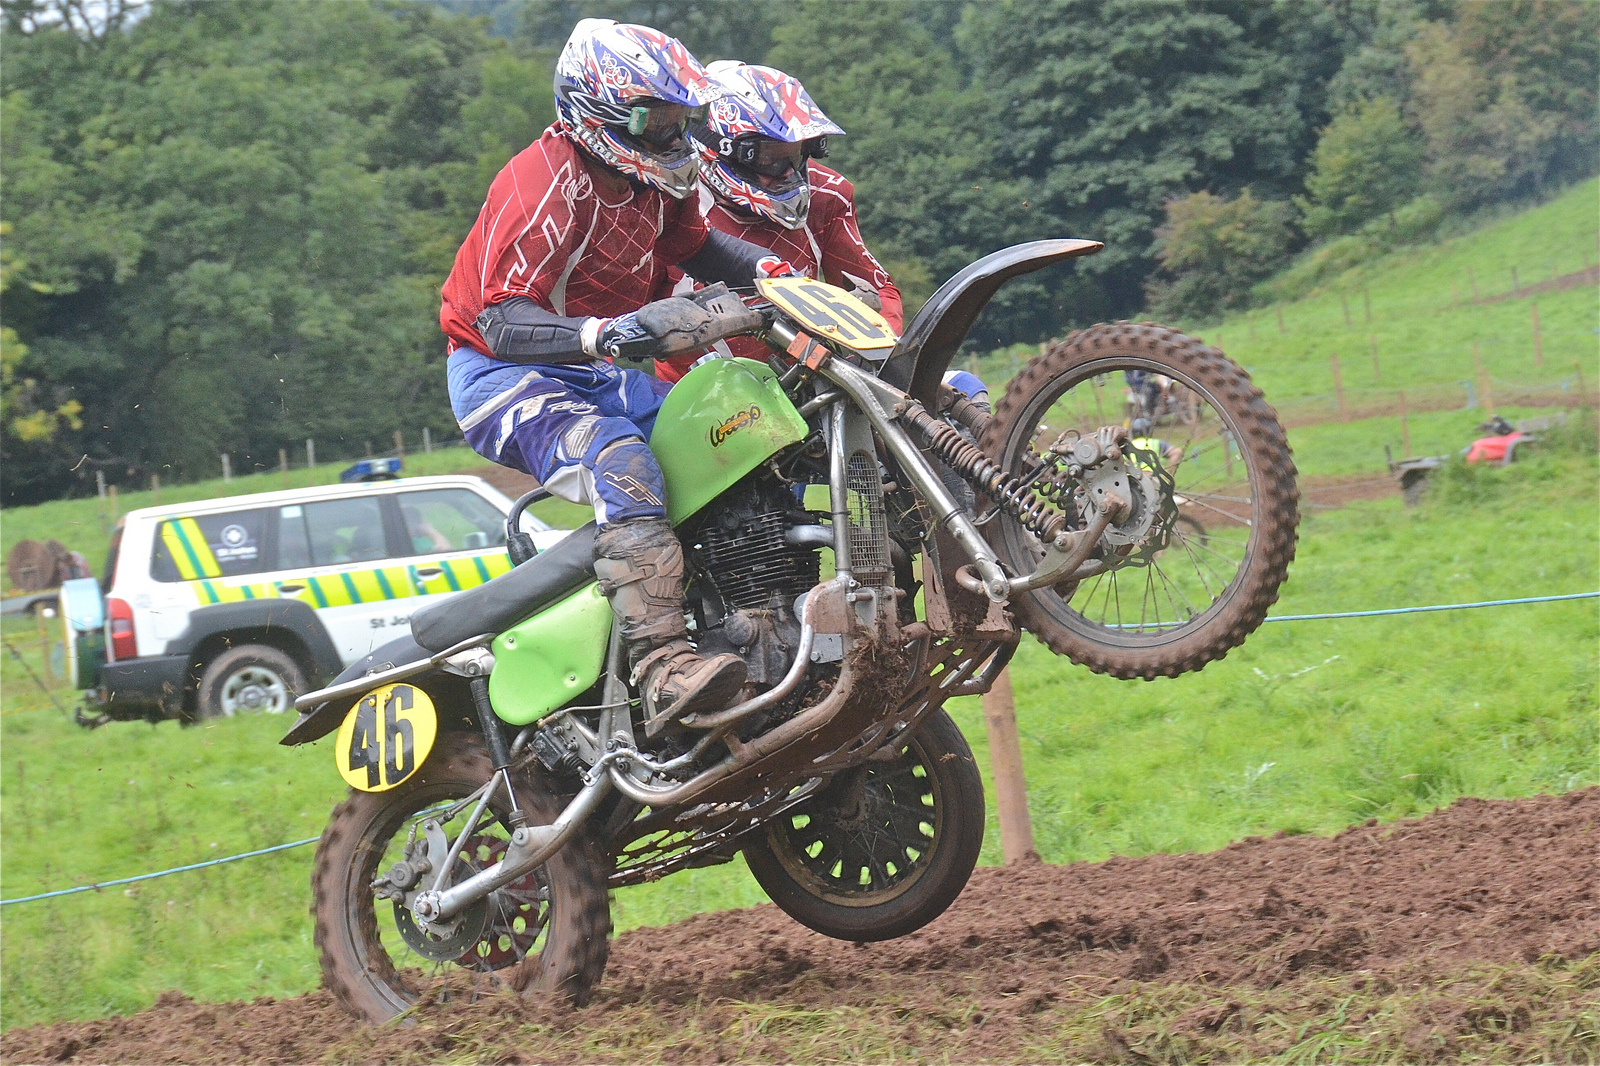 Llanthony Classic Scramble Photos September 2015 classicdirtbikerider.com..41